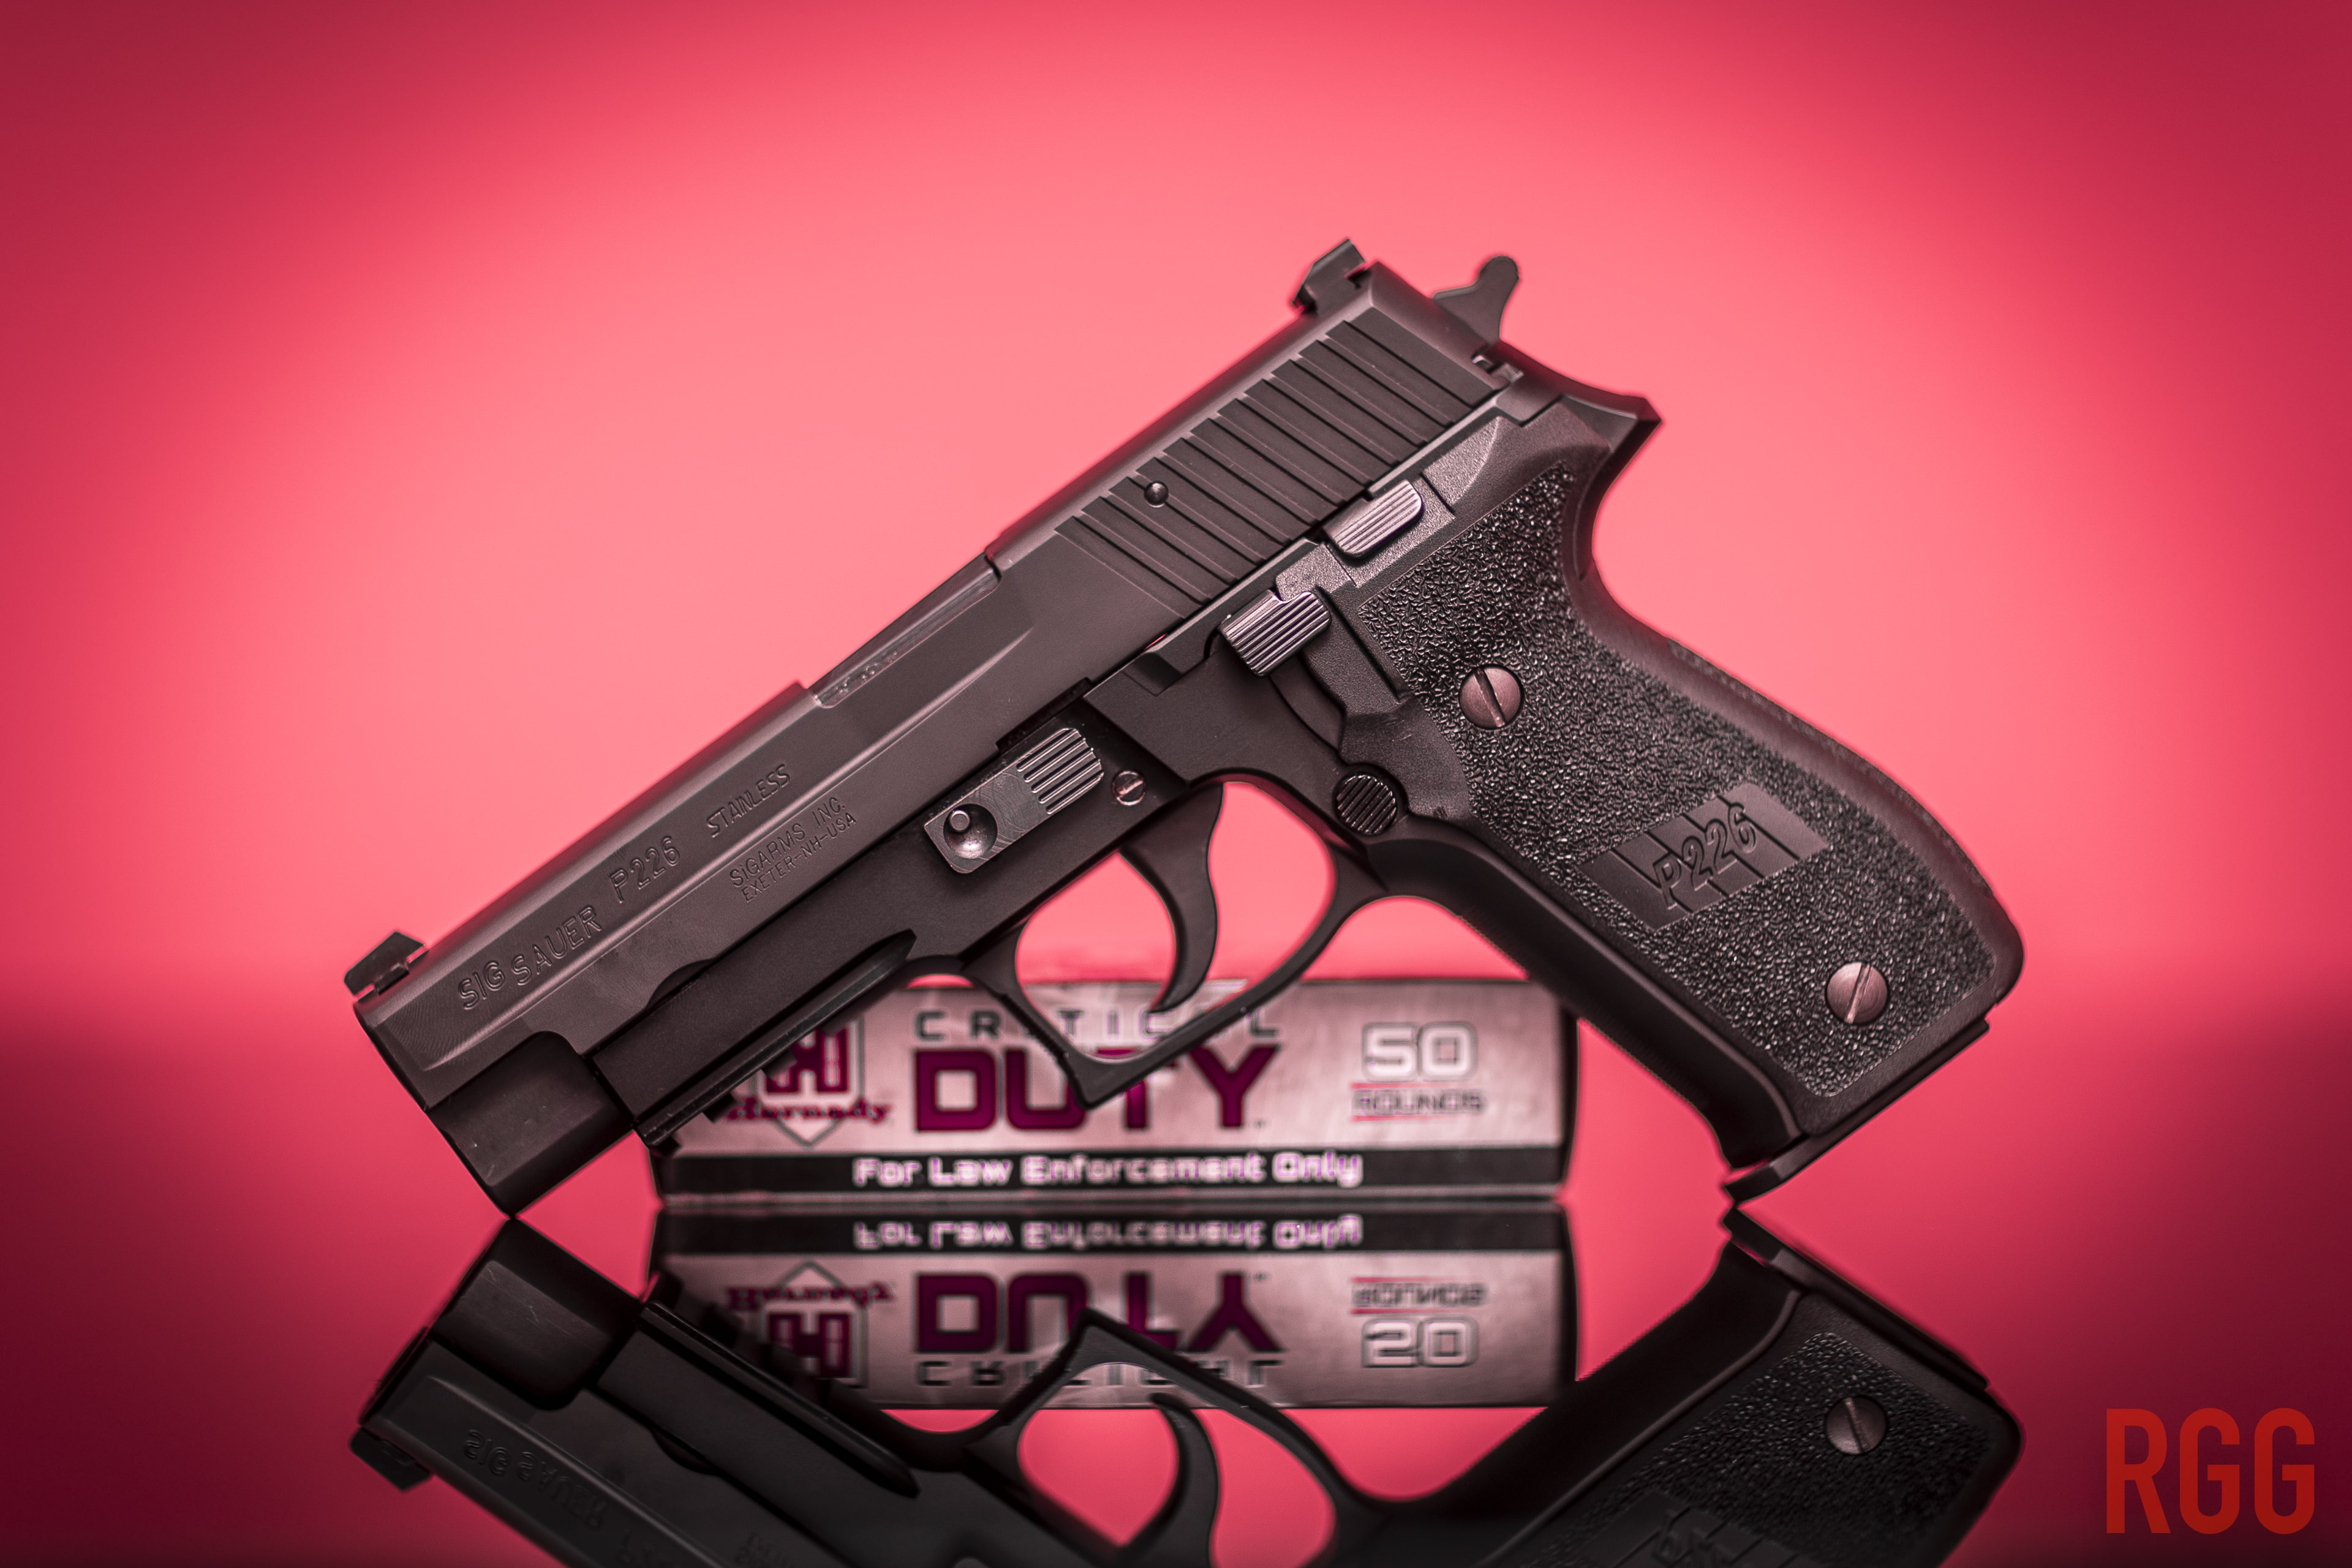 With the right instruction and technique, a SIG P226 is a quite suitable handgun for a woman.